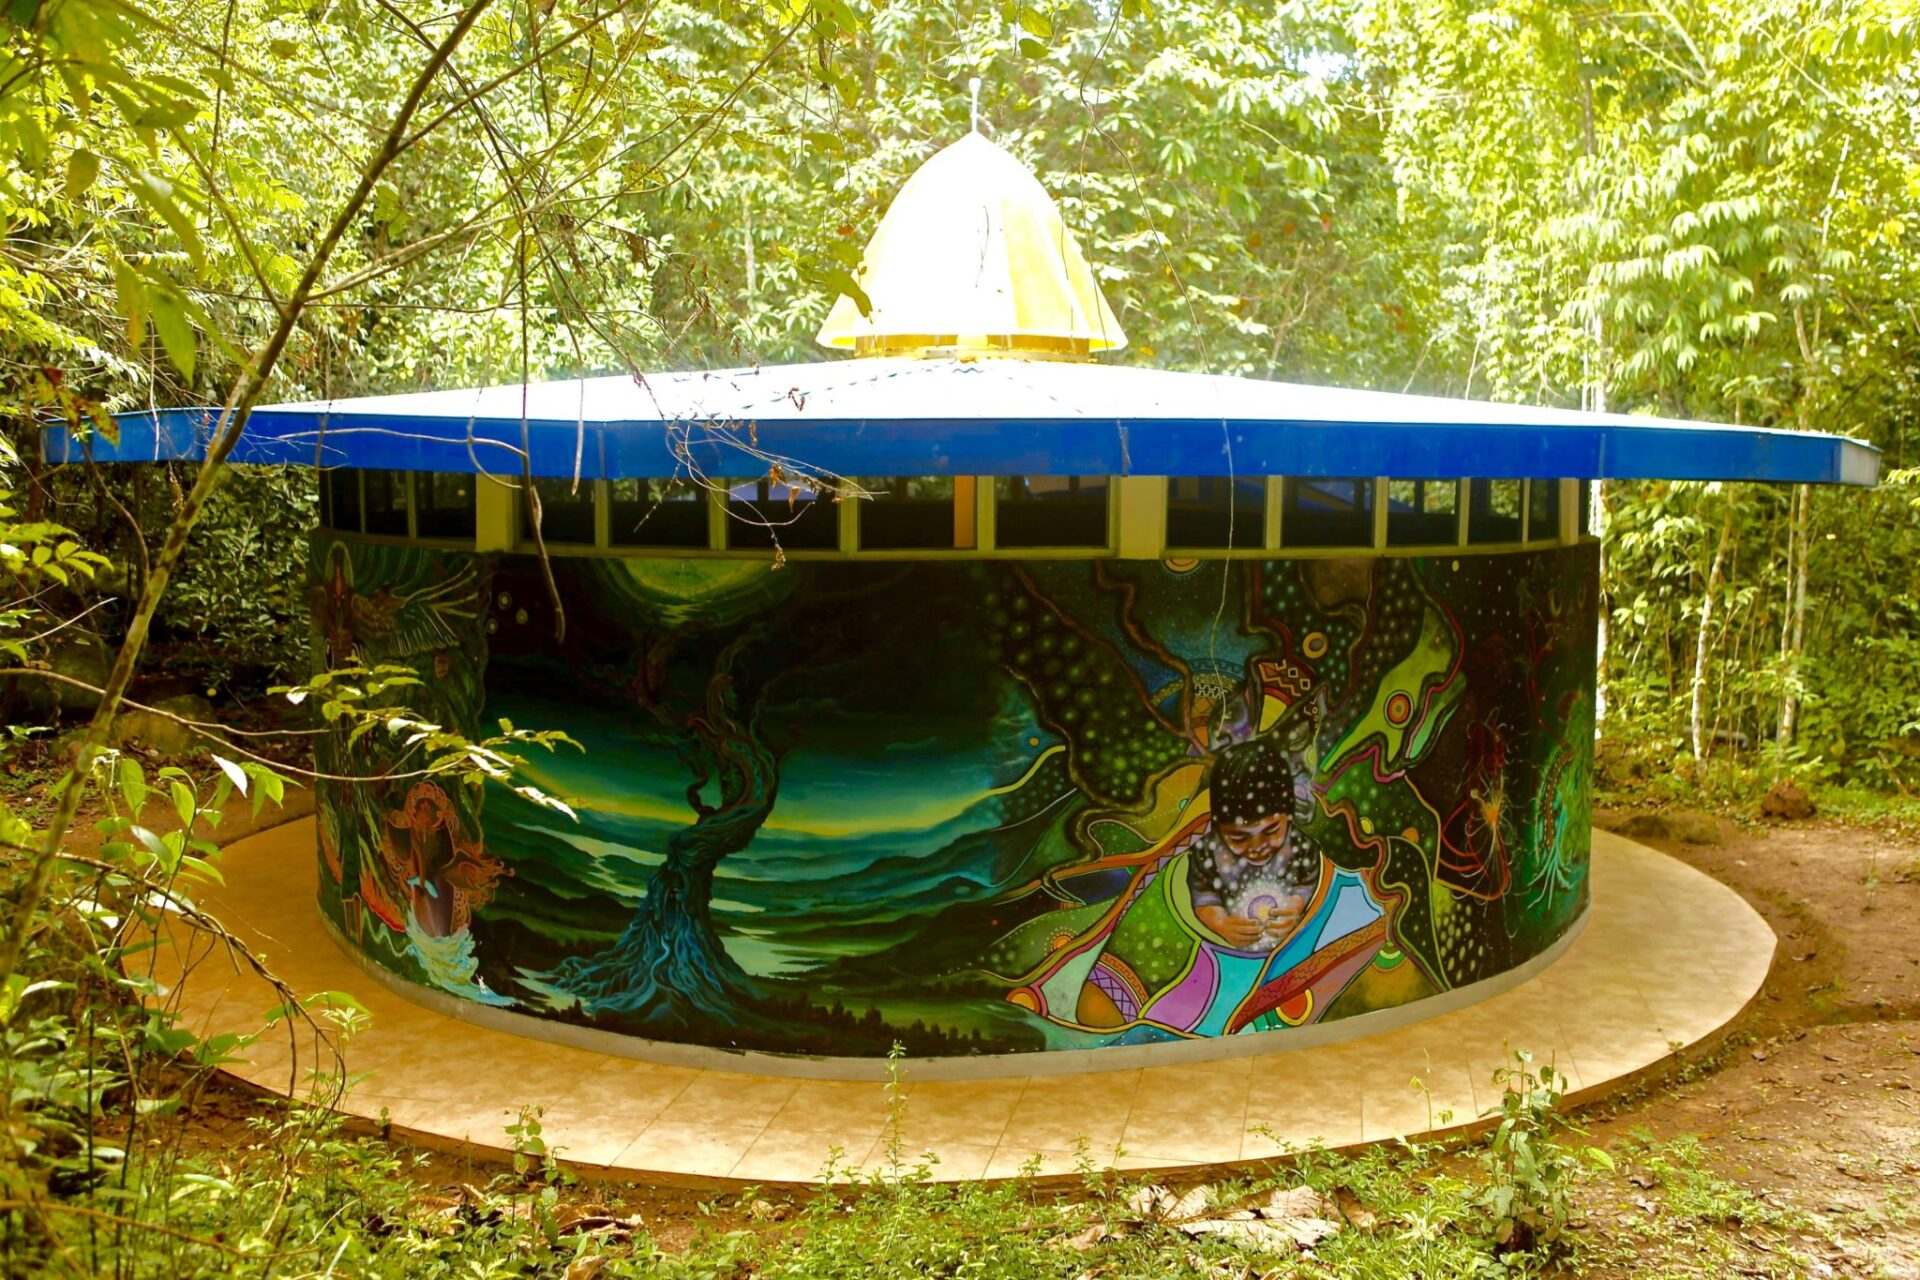 La Astronave, a purpose built gallery in honor of the Goddess Ayahuasca!